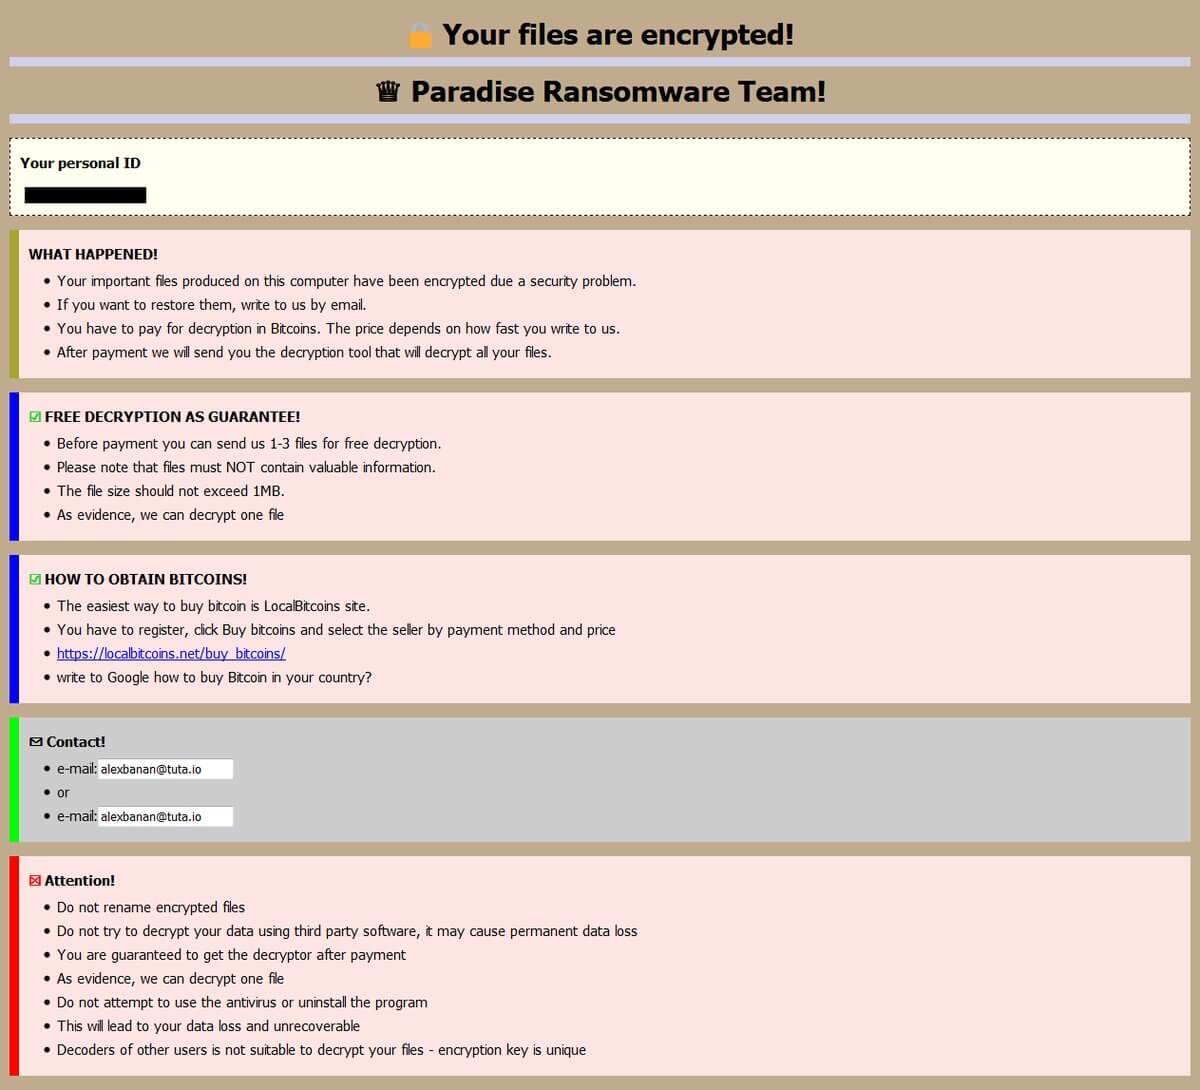 CORP files virus Paradise ransomware ransom note sensorstechforum removal guide